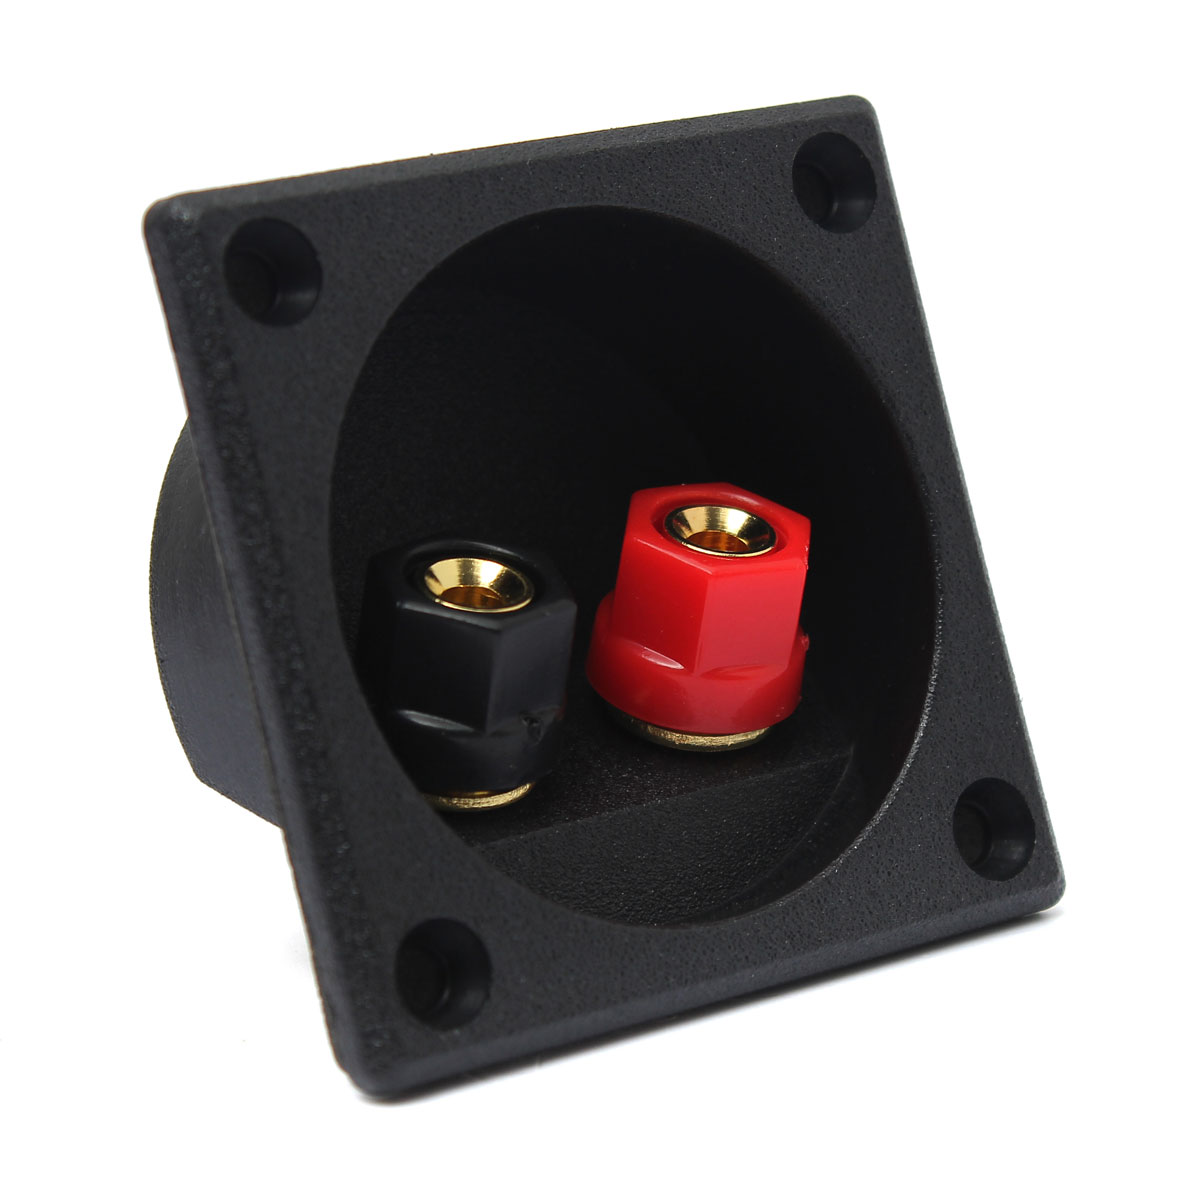 High Quality 1PC Square Binding Post Type Speaker Box Terminal Board Cup Wire Cable Box Connector(China (Mainland))